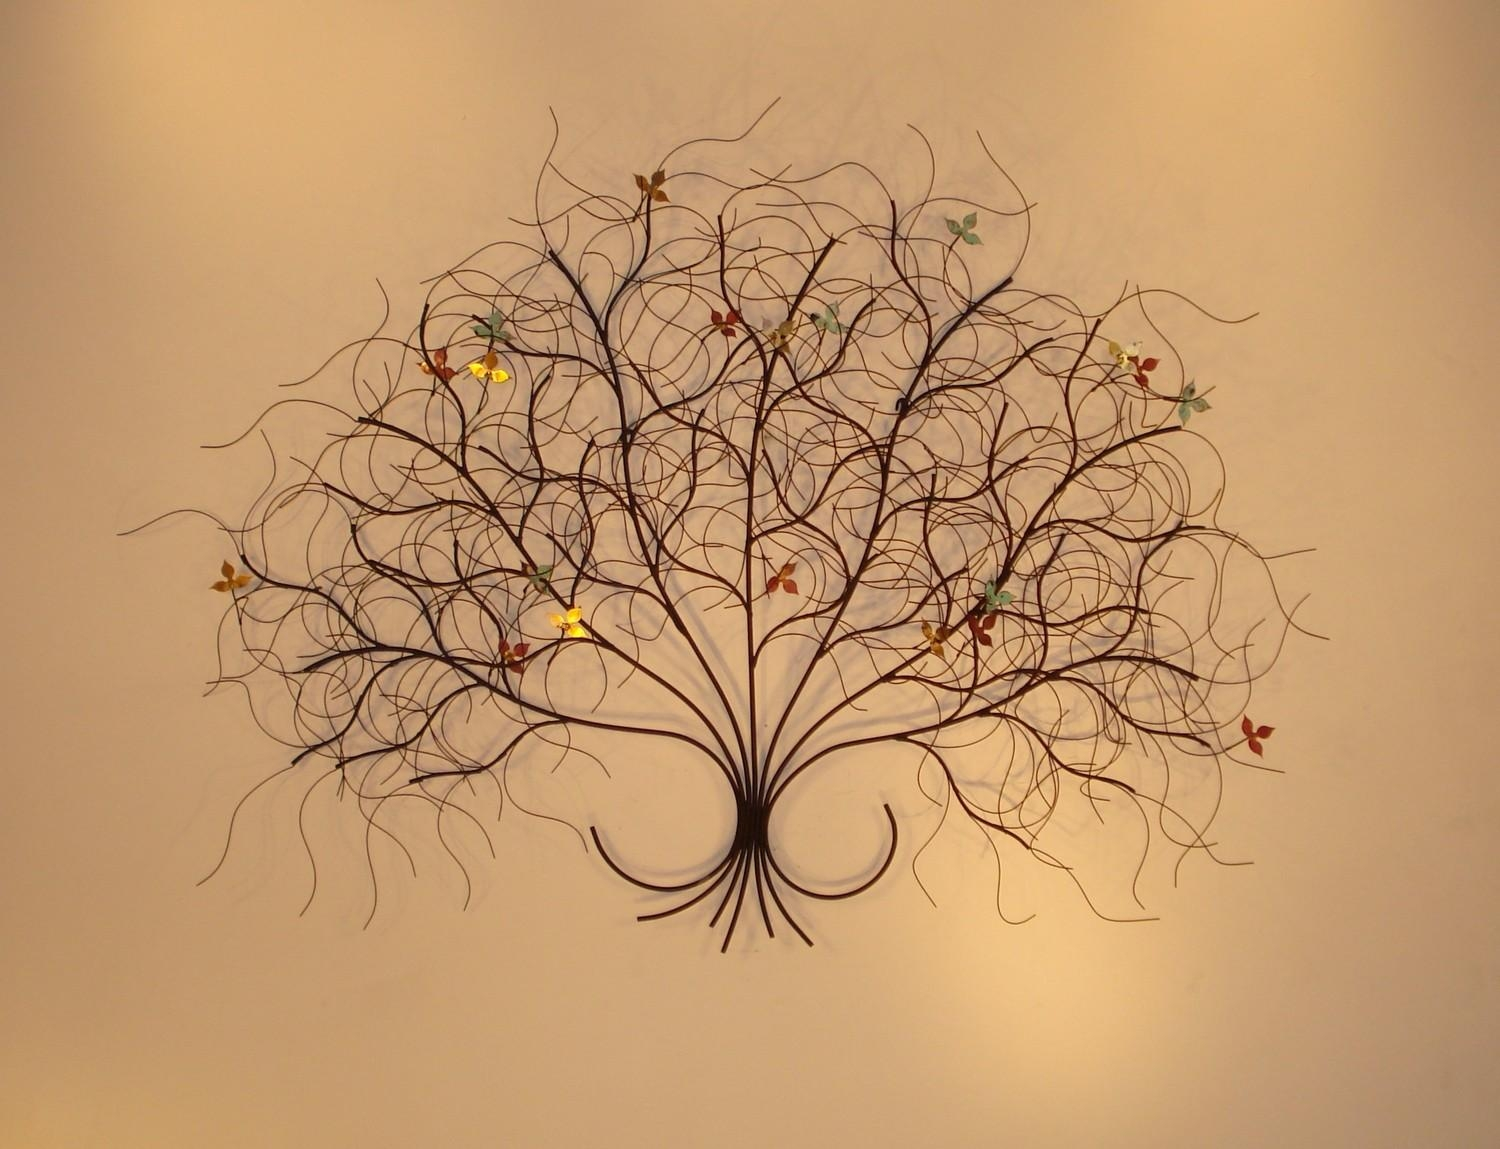 Metal Wall Sculptures And Wall Art – Branches | Gurtan Designs With Metal Tree Wall Art Sculpture (View 7 of 20)